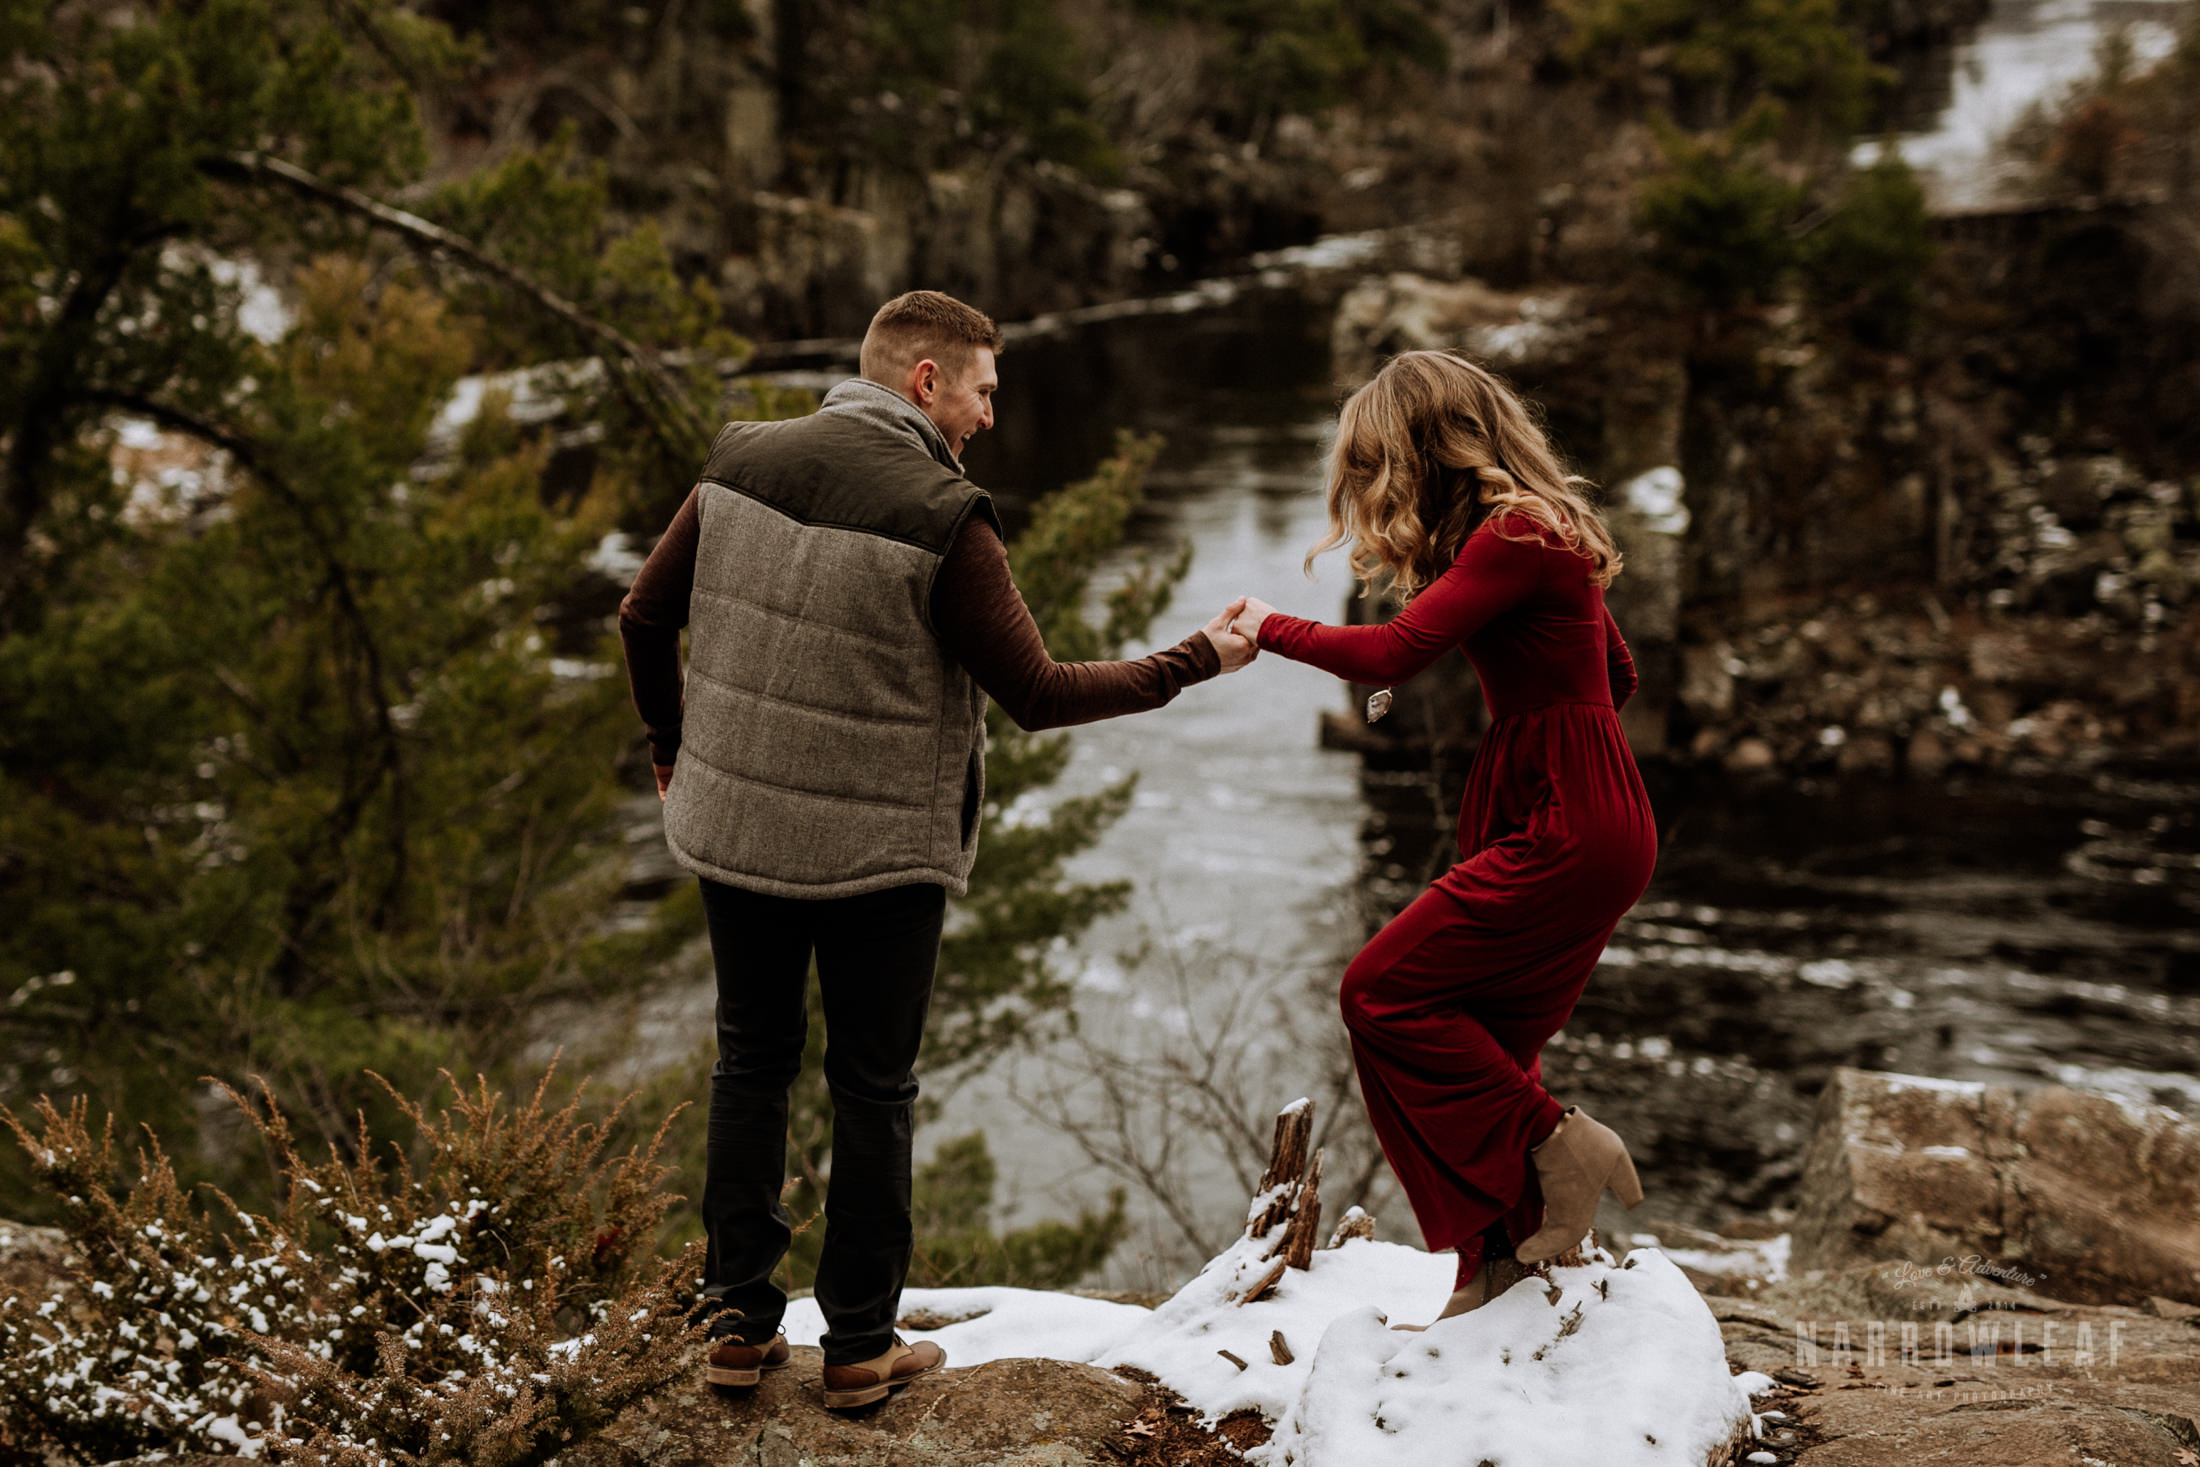 wisconsin-winter-adventure-engagement-interstate-park-bluffs-Narrowleaf_Love_and_Adventure_Photography-1662.jpg